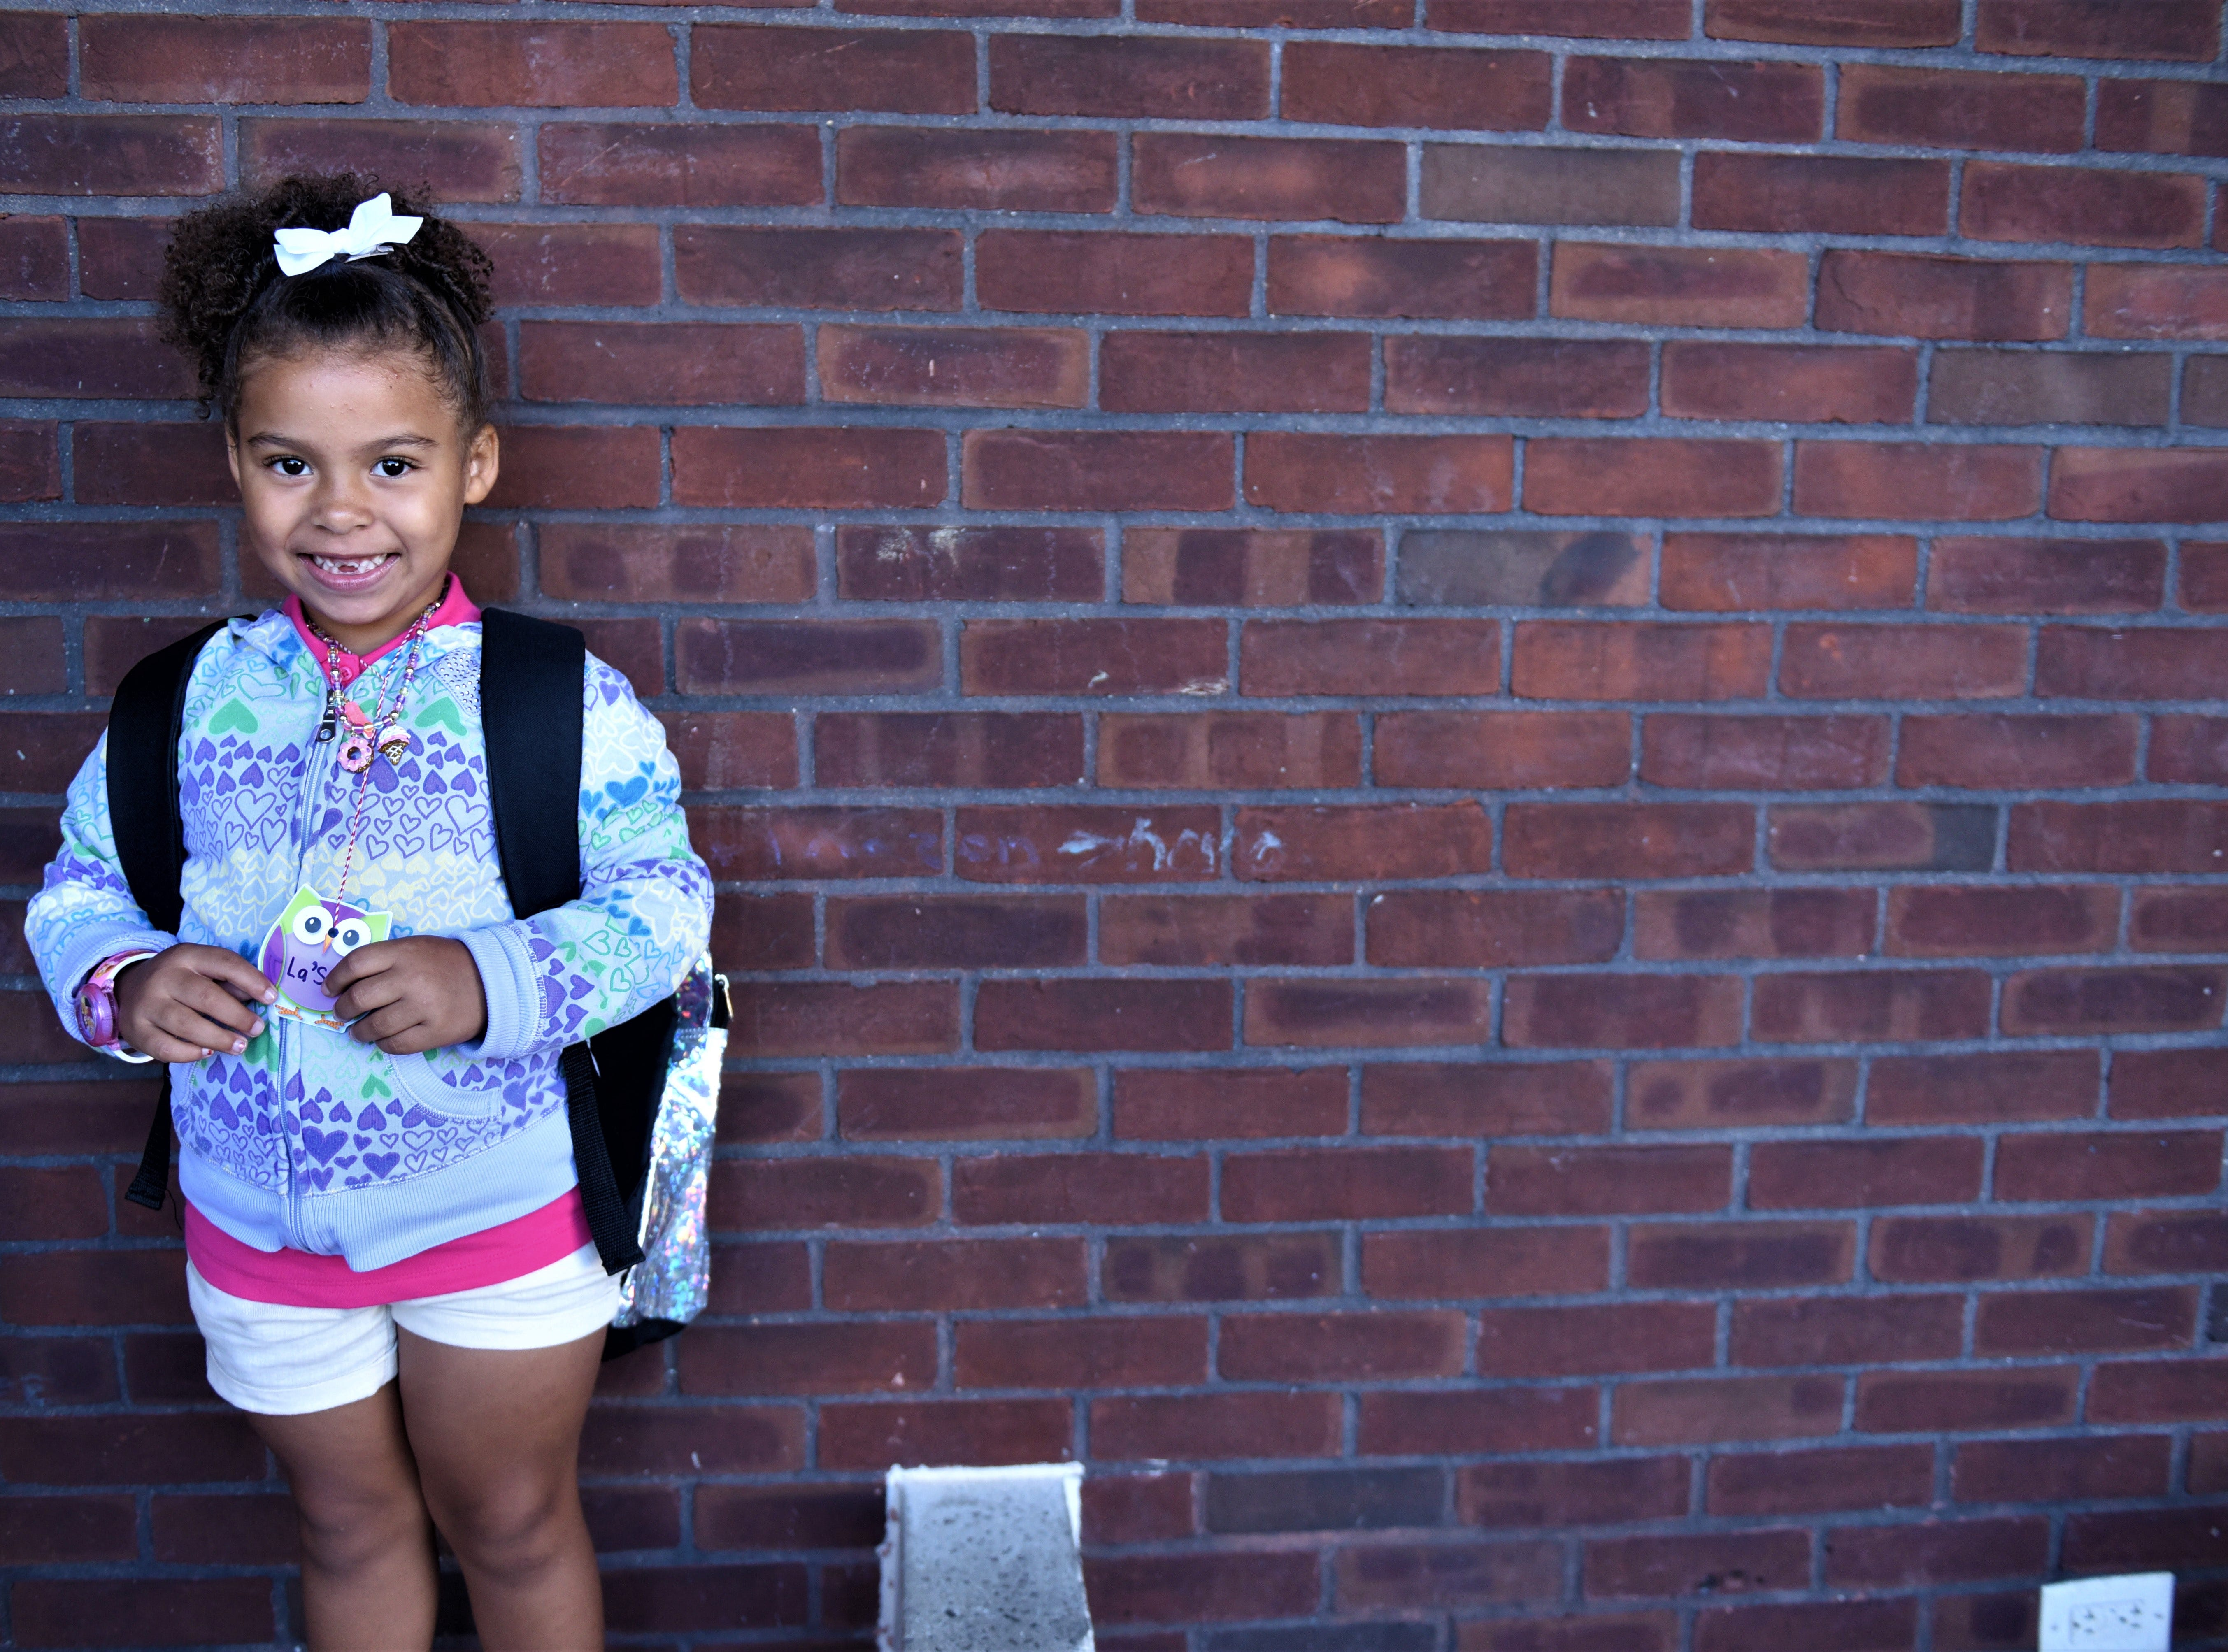 La' Skyy Blue is excited for her first day of kindergarten at Hanover Street Elementary on Aug. 23.